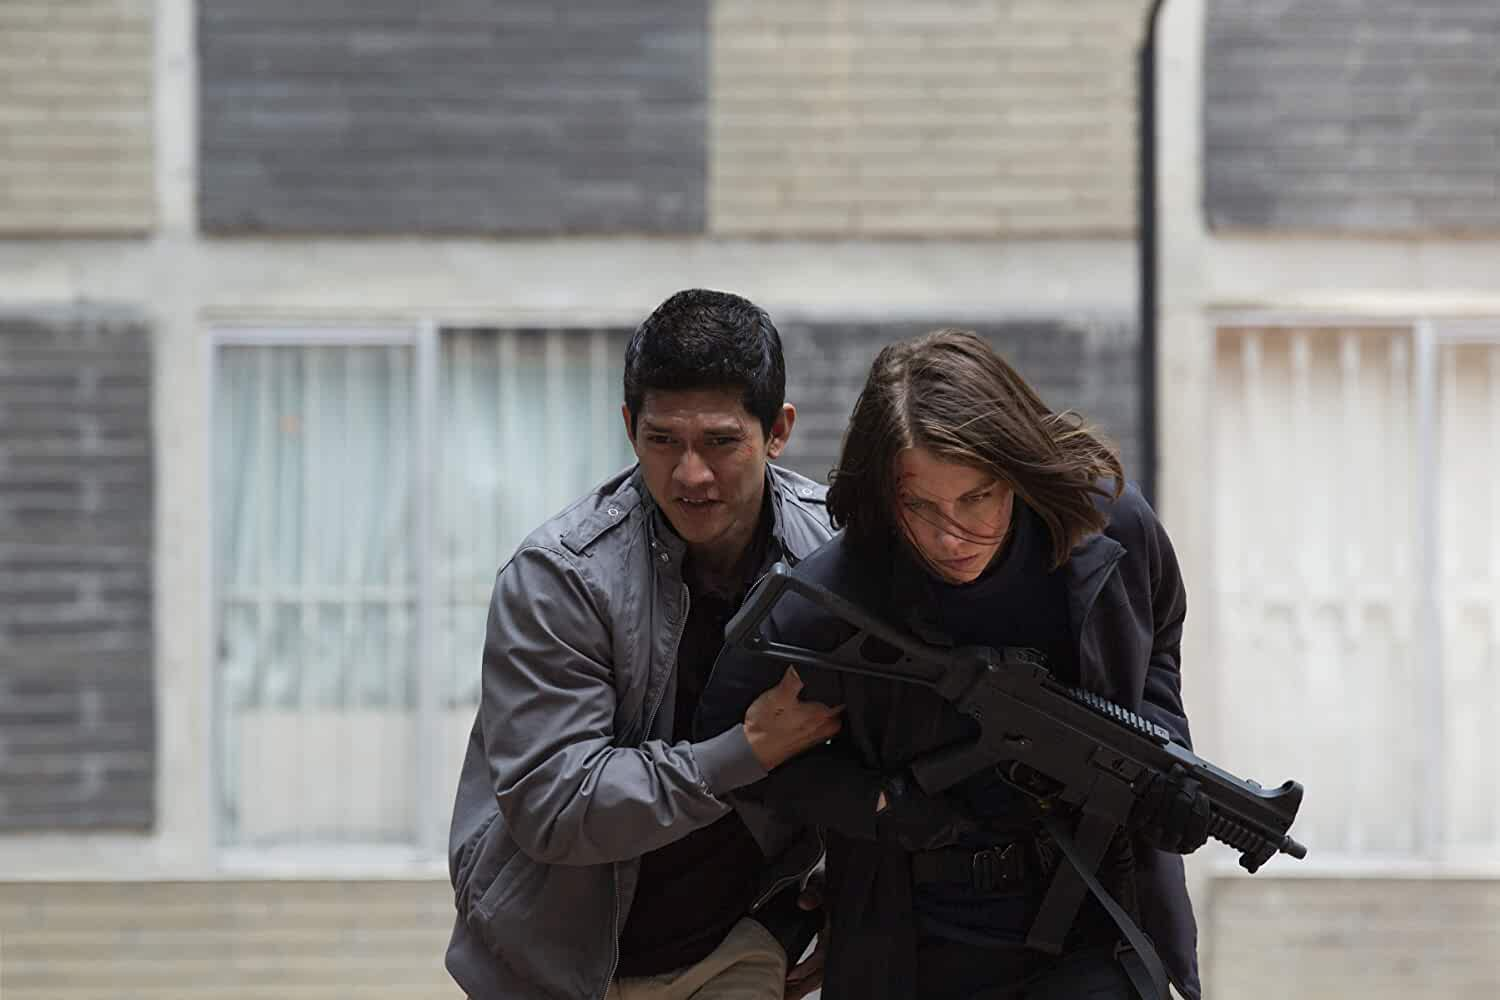 Lauren Cohan and Iko Uwais in Mile 22 (2018)